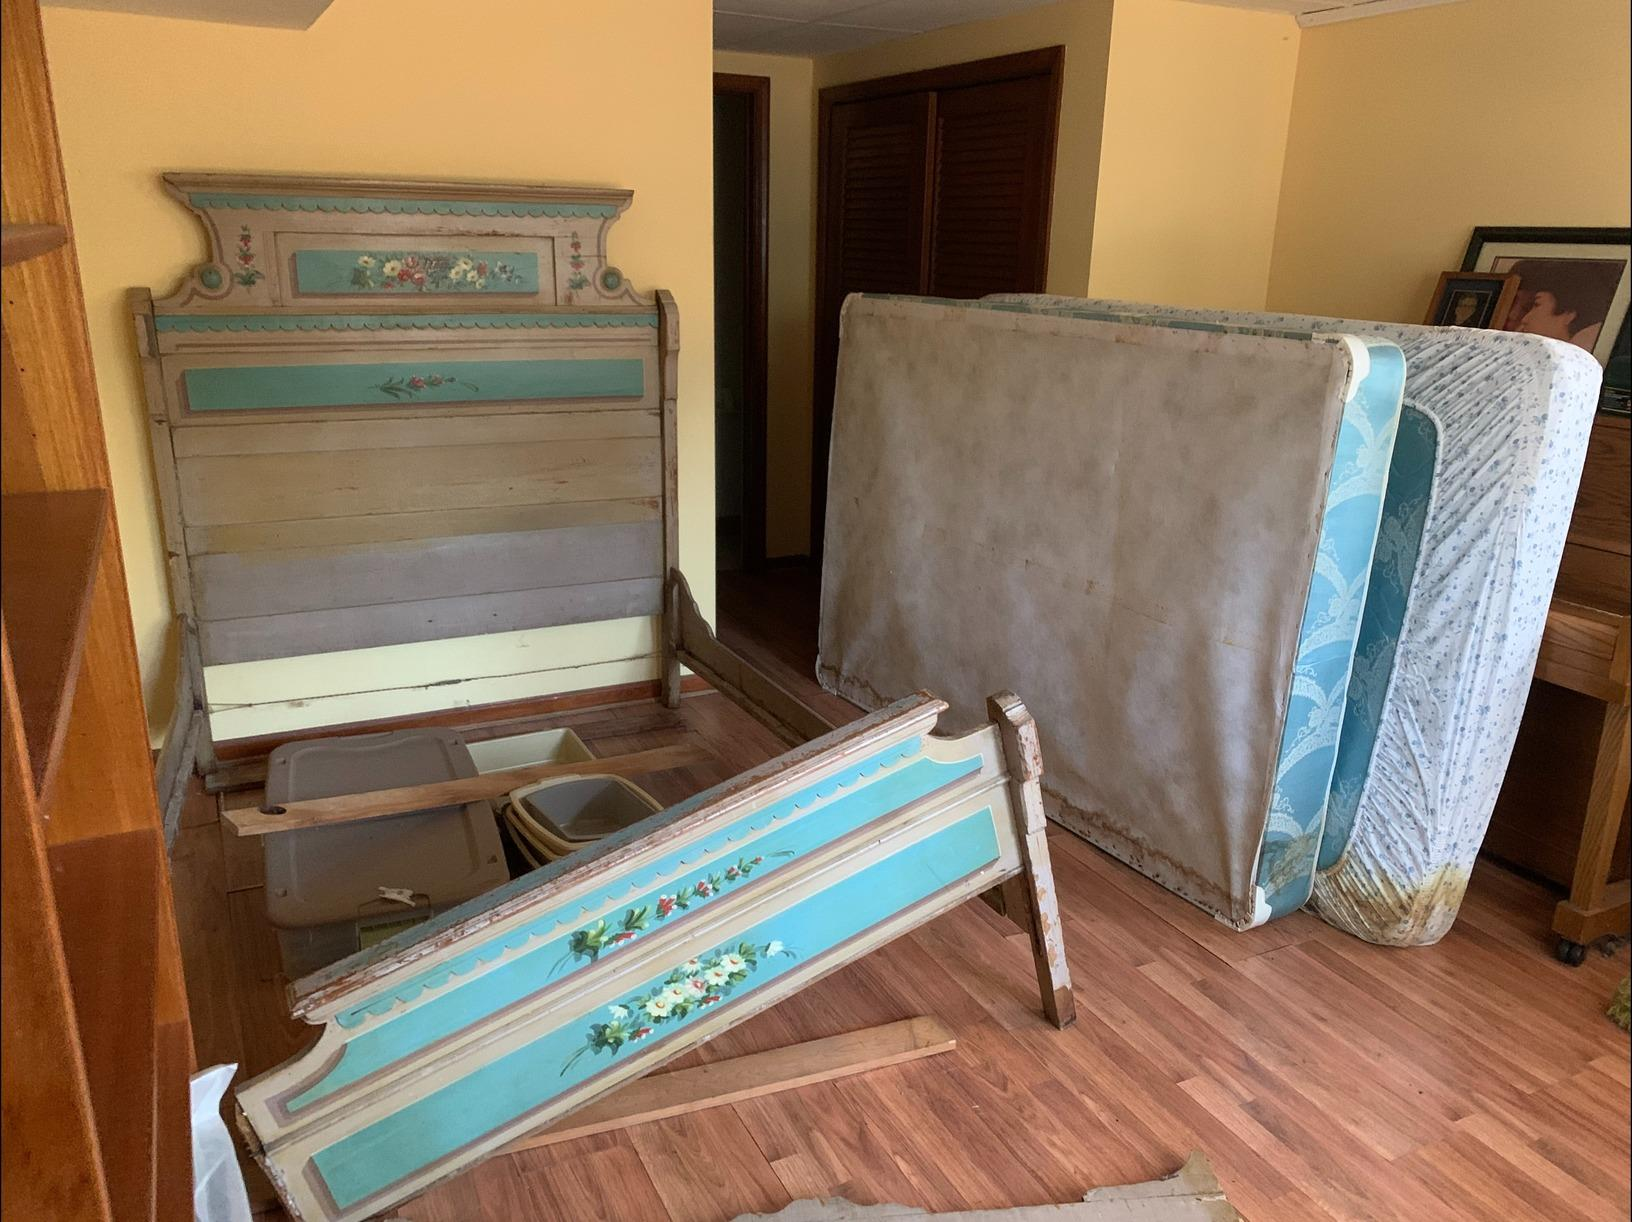 Bed and Mattress Removal in Williamsburg, VA - Before Photo